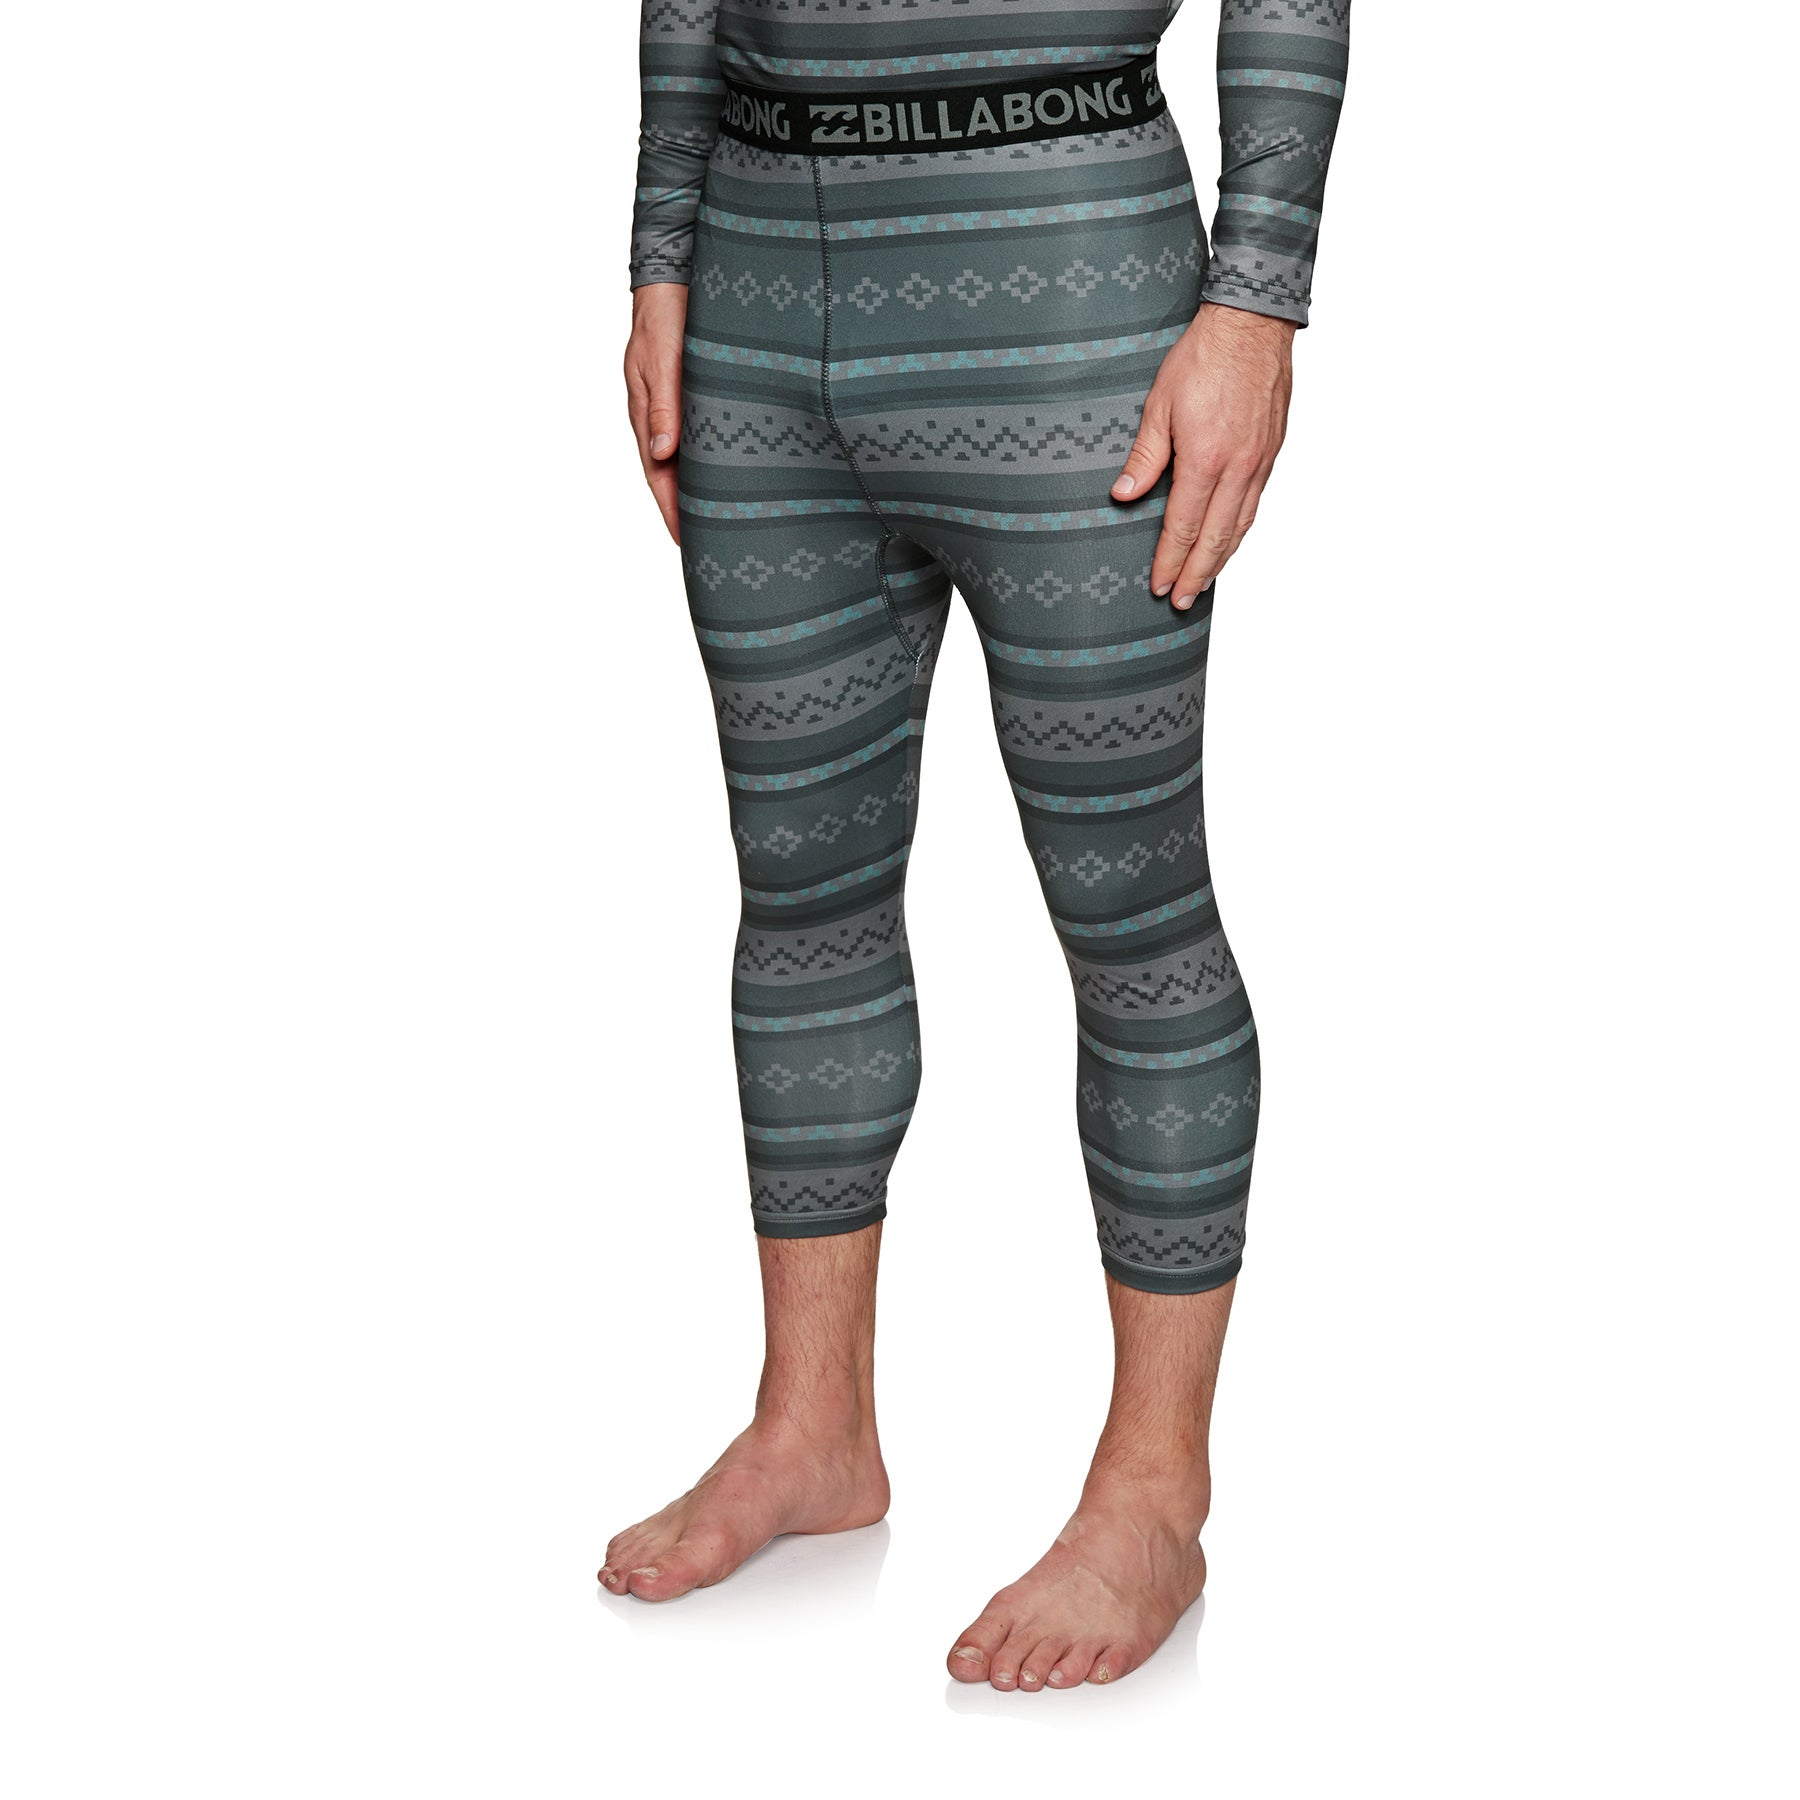 Billabong Operator Base Layer Leggings